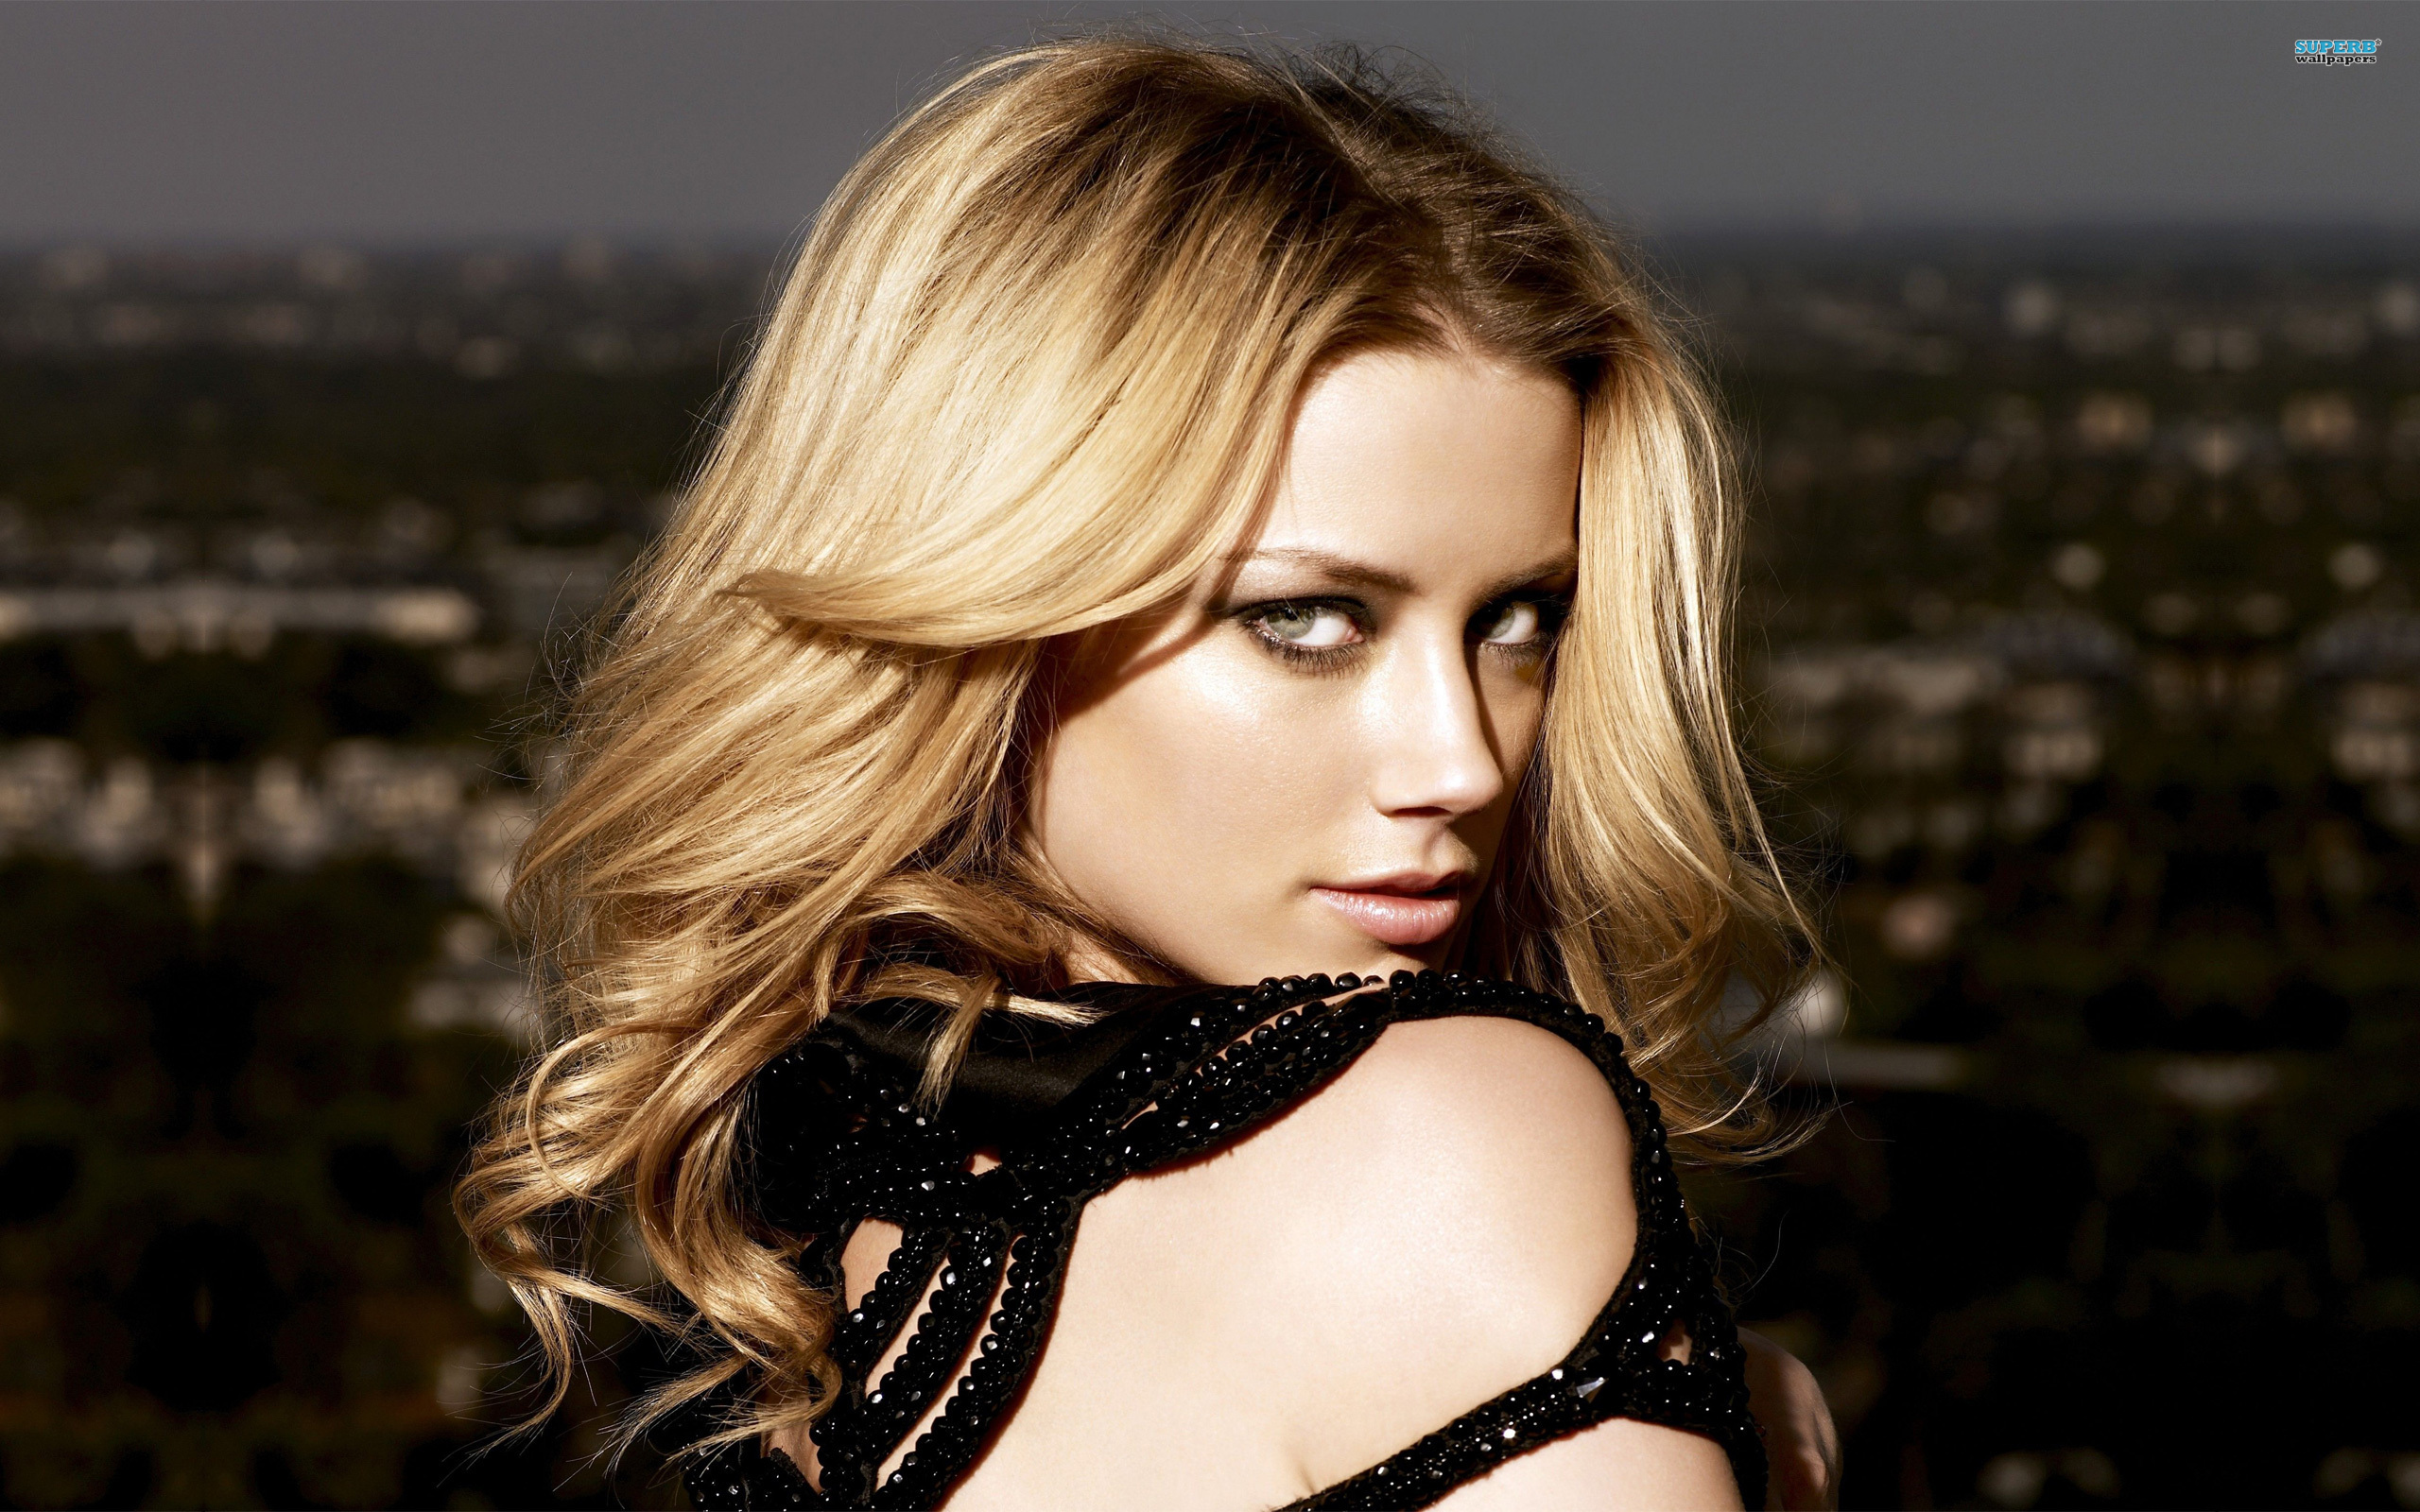 Amber Heard wallpaper 2560x1600 jpg